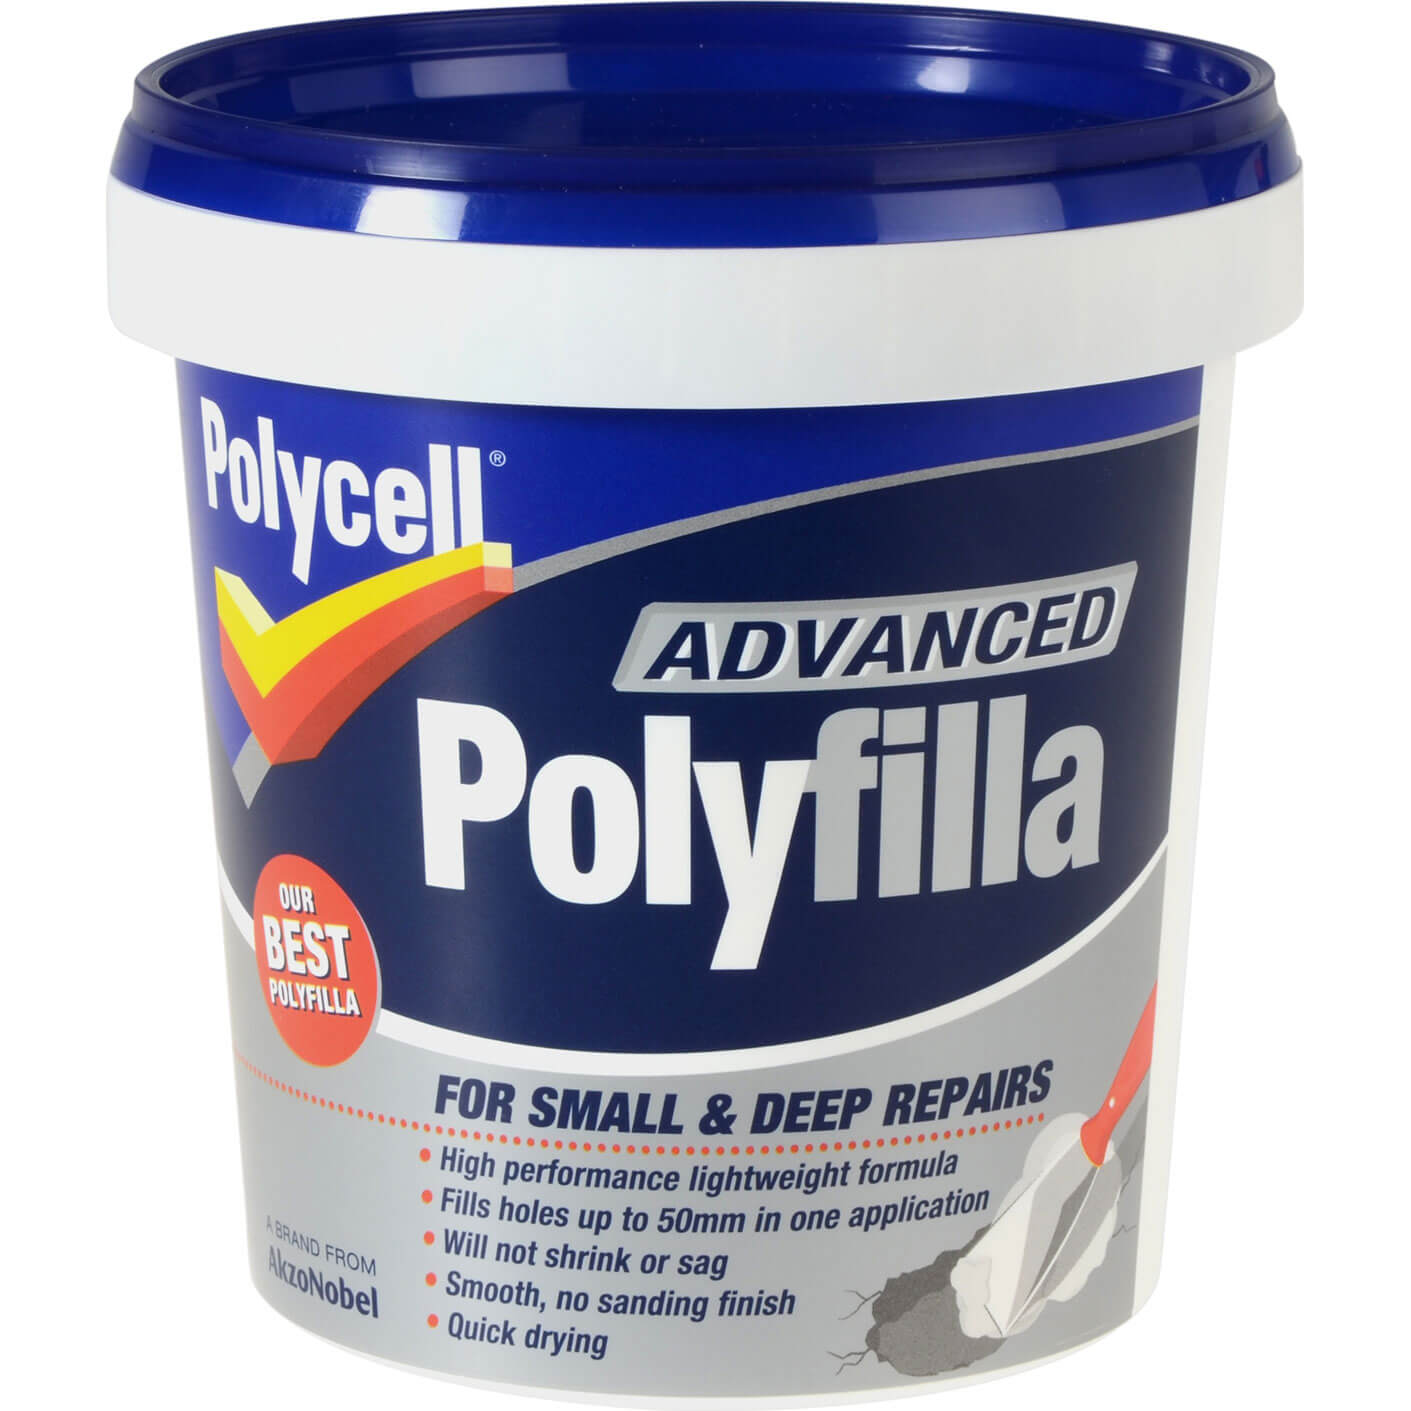 Image of Polycell Advanced Polyfilla 600ml